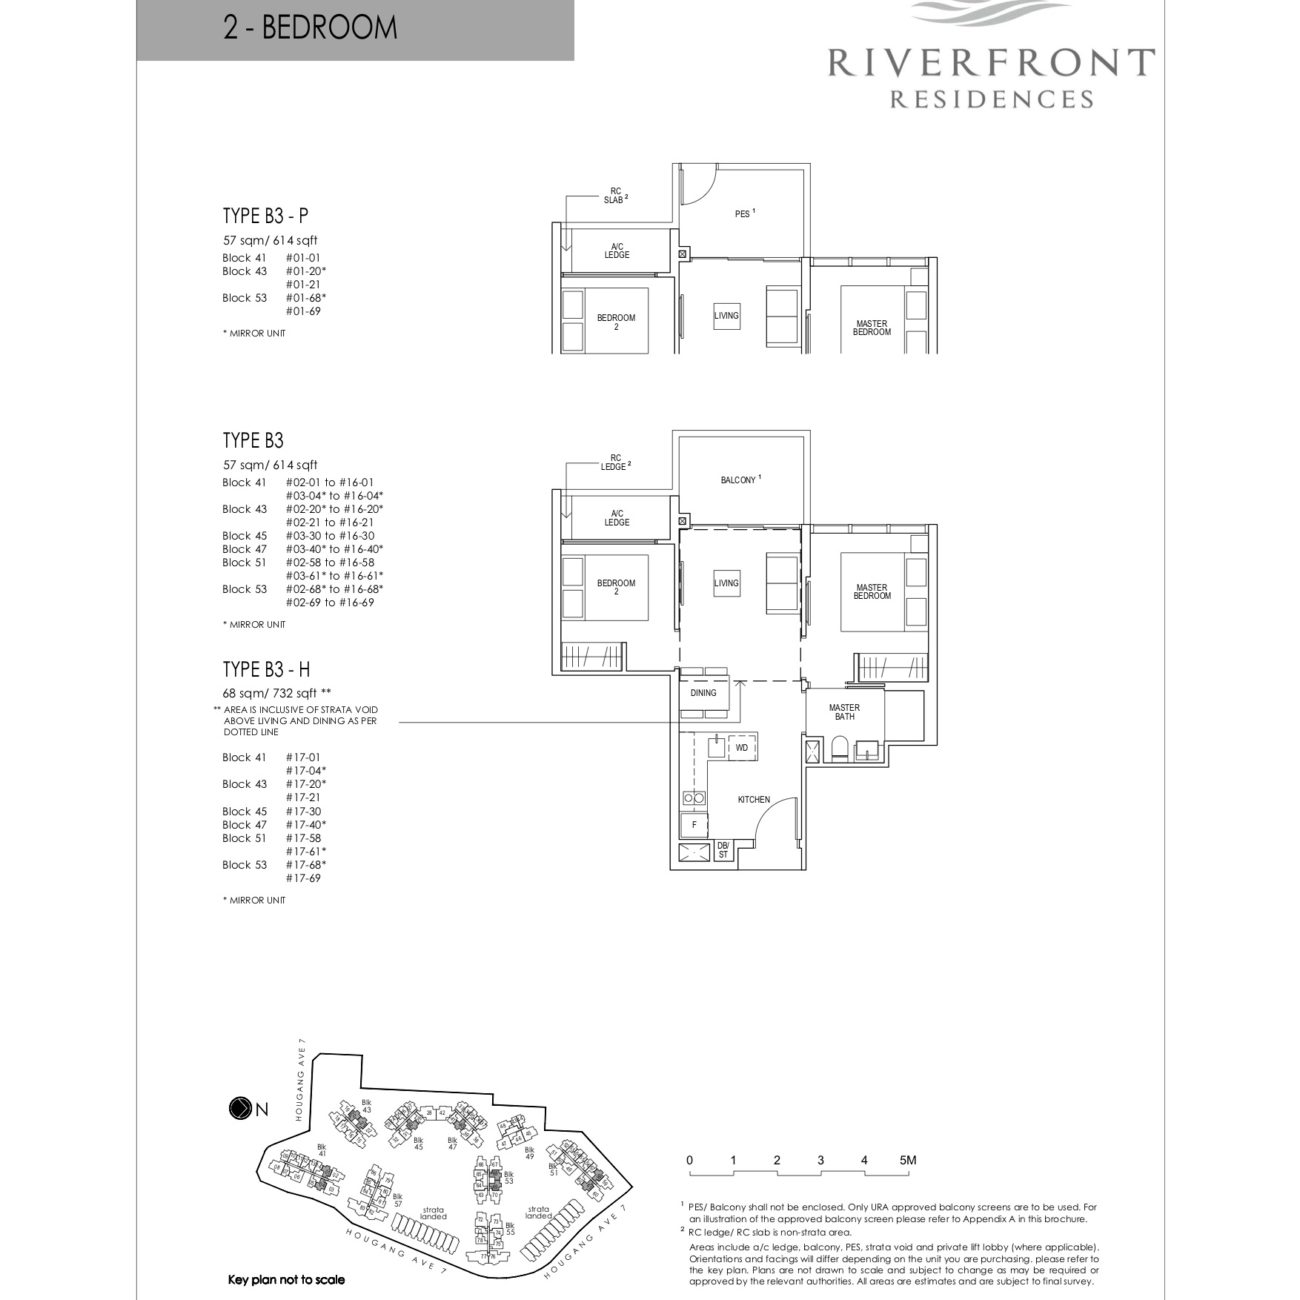 riverfront-residences-floorplan-2bedroom-b3